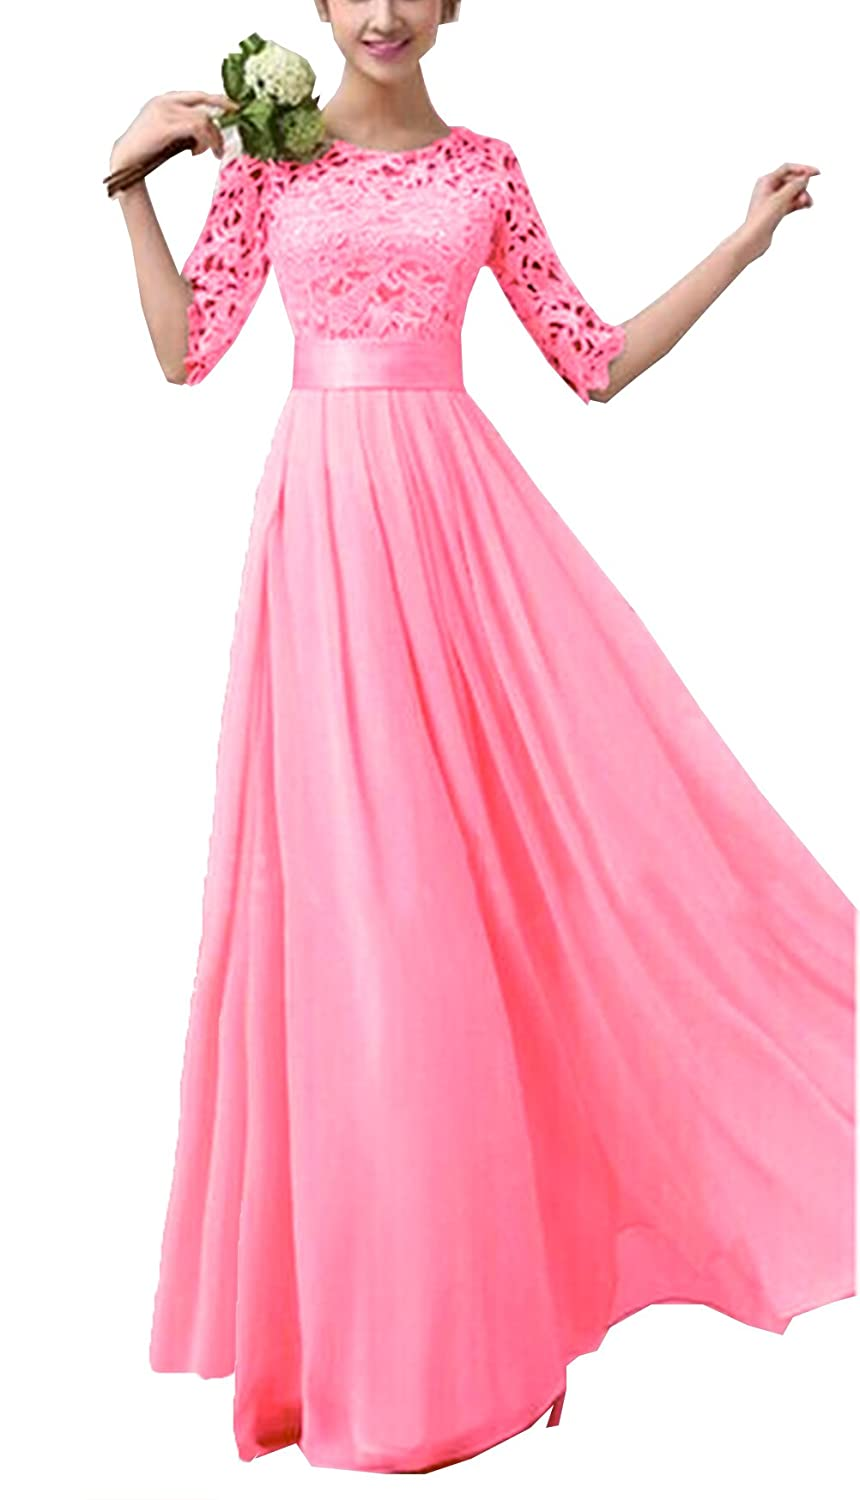 AWEIDS Women's Lace Chiffon Patchwork Prom Ball Gown Cocktail Evening Party Maxi Dress